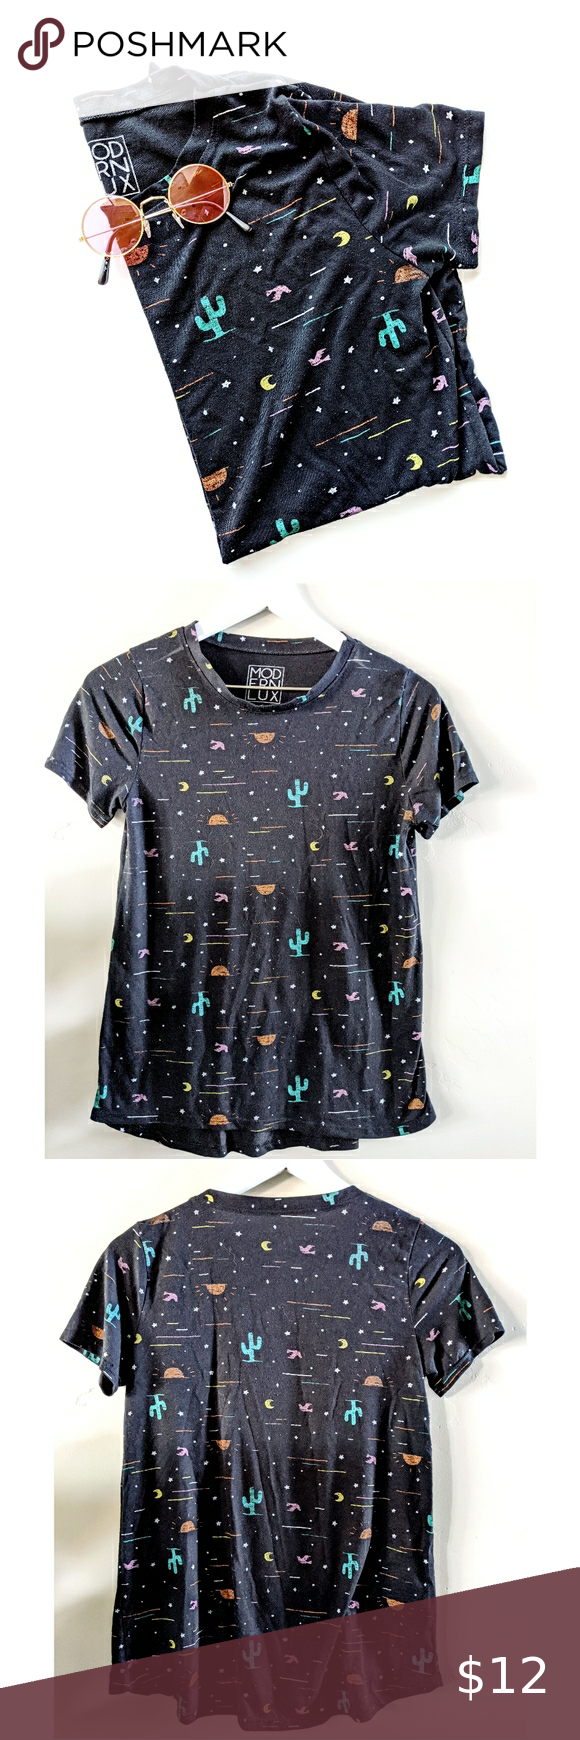 Modern Lux Desert Cactus Graphic Print T-shirt Summer kissed days are ahead in t...#ahead #cactus #days #desert #graphic #kissed #lux #modern #print #summer #tshirt